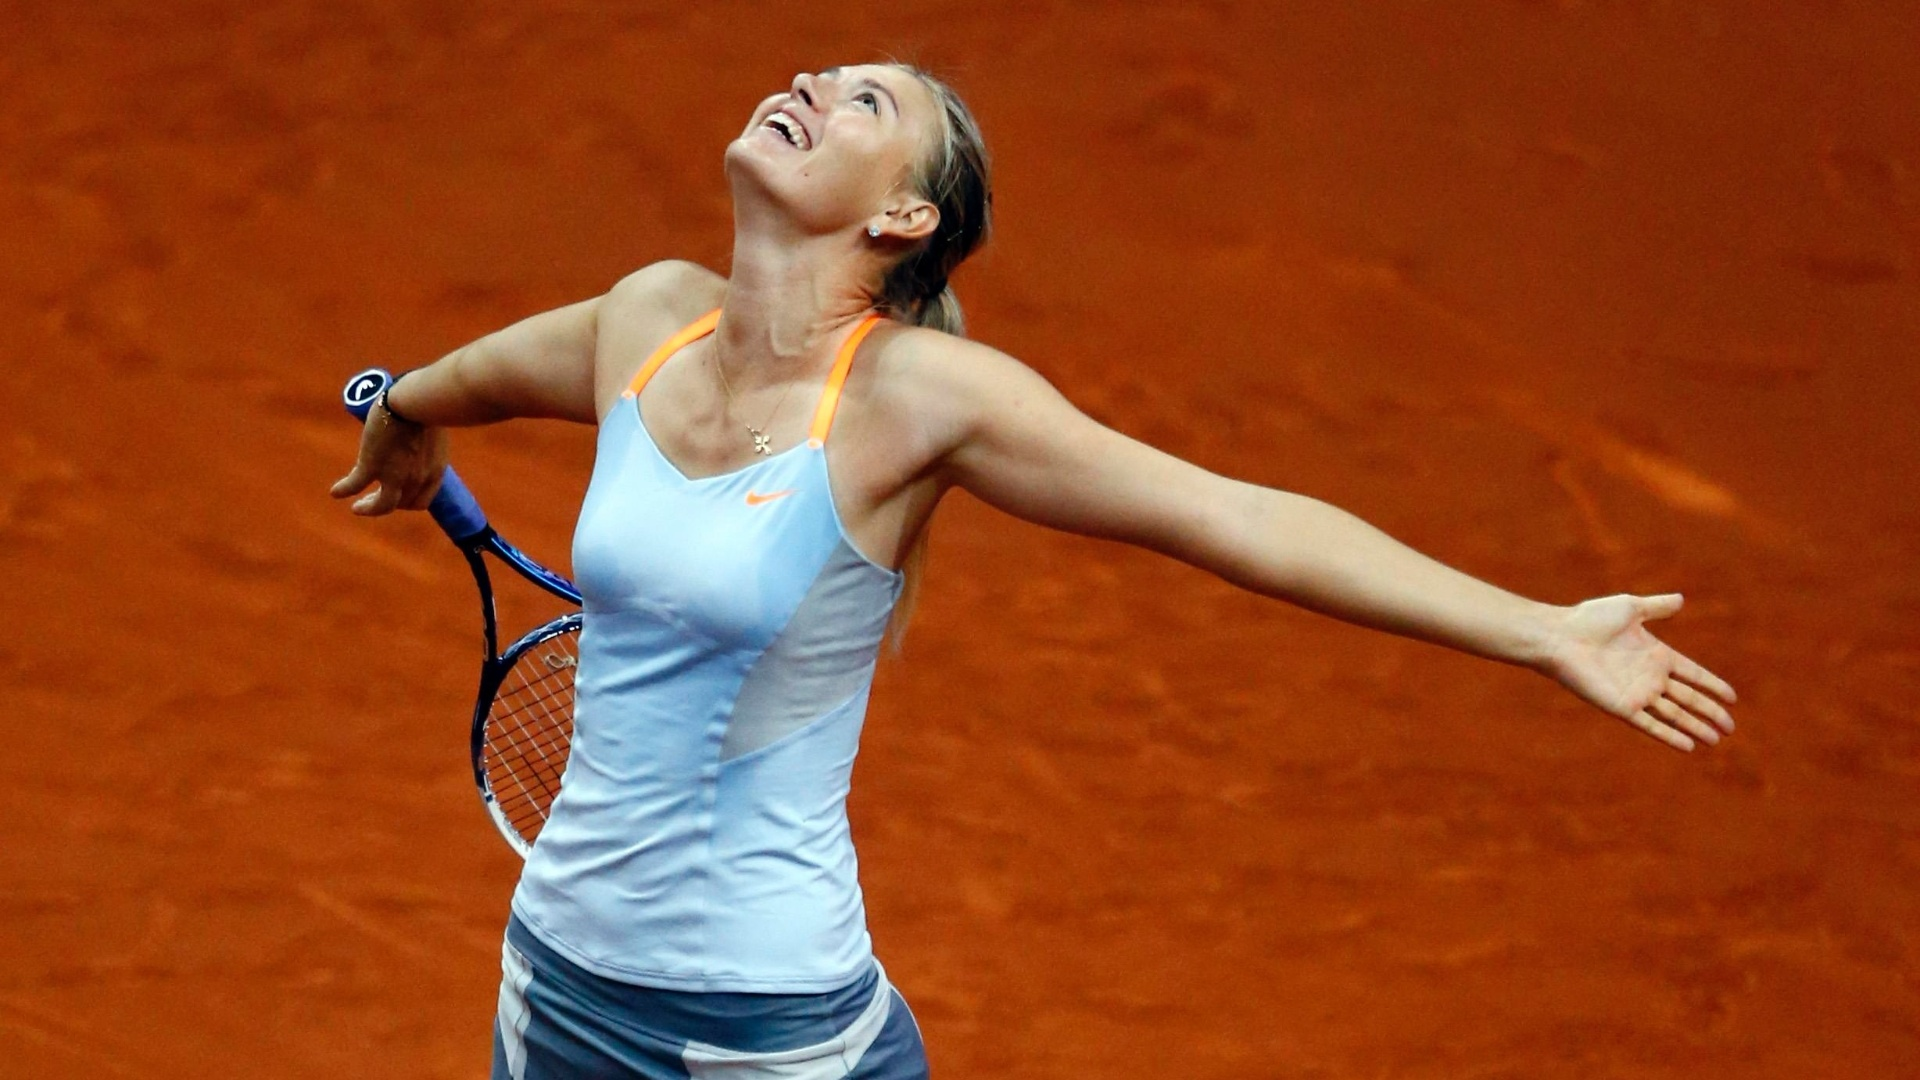 28.abr.2013 - Sharapova comemora aps vencer a chinesa Na Li por dois sets a 0 e se sagrar campe do Torneio de Stuttgart, na Alemanha